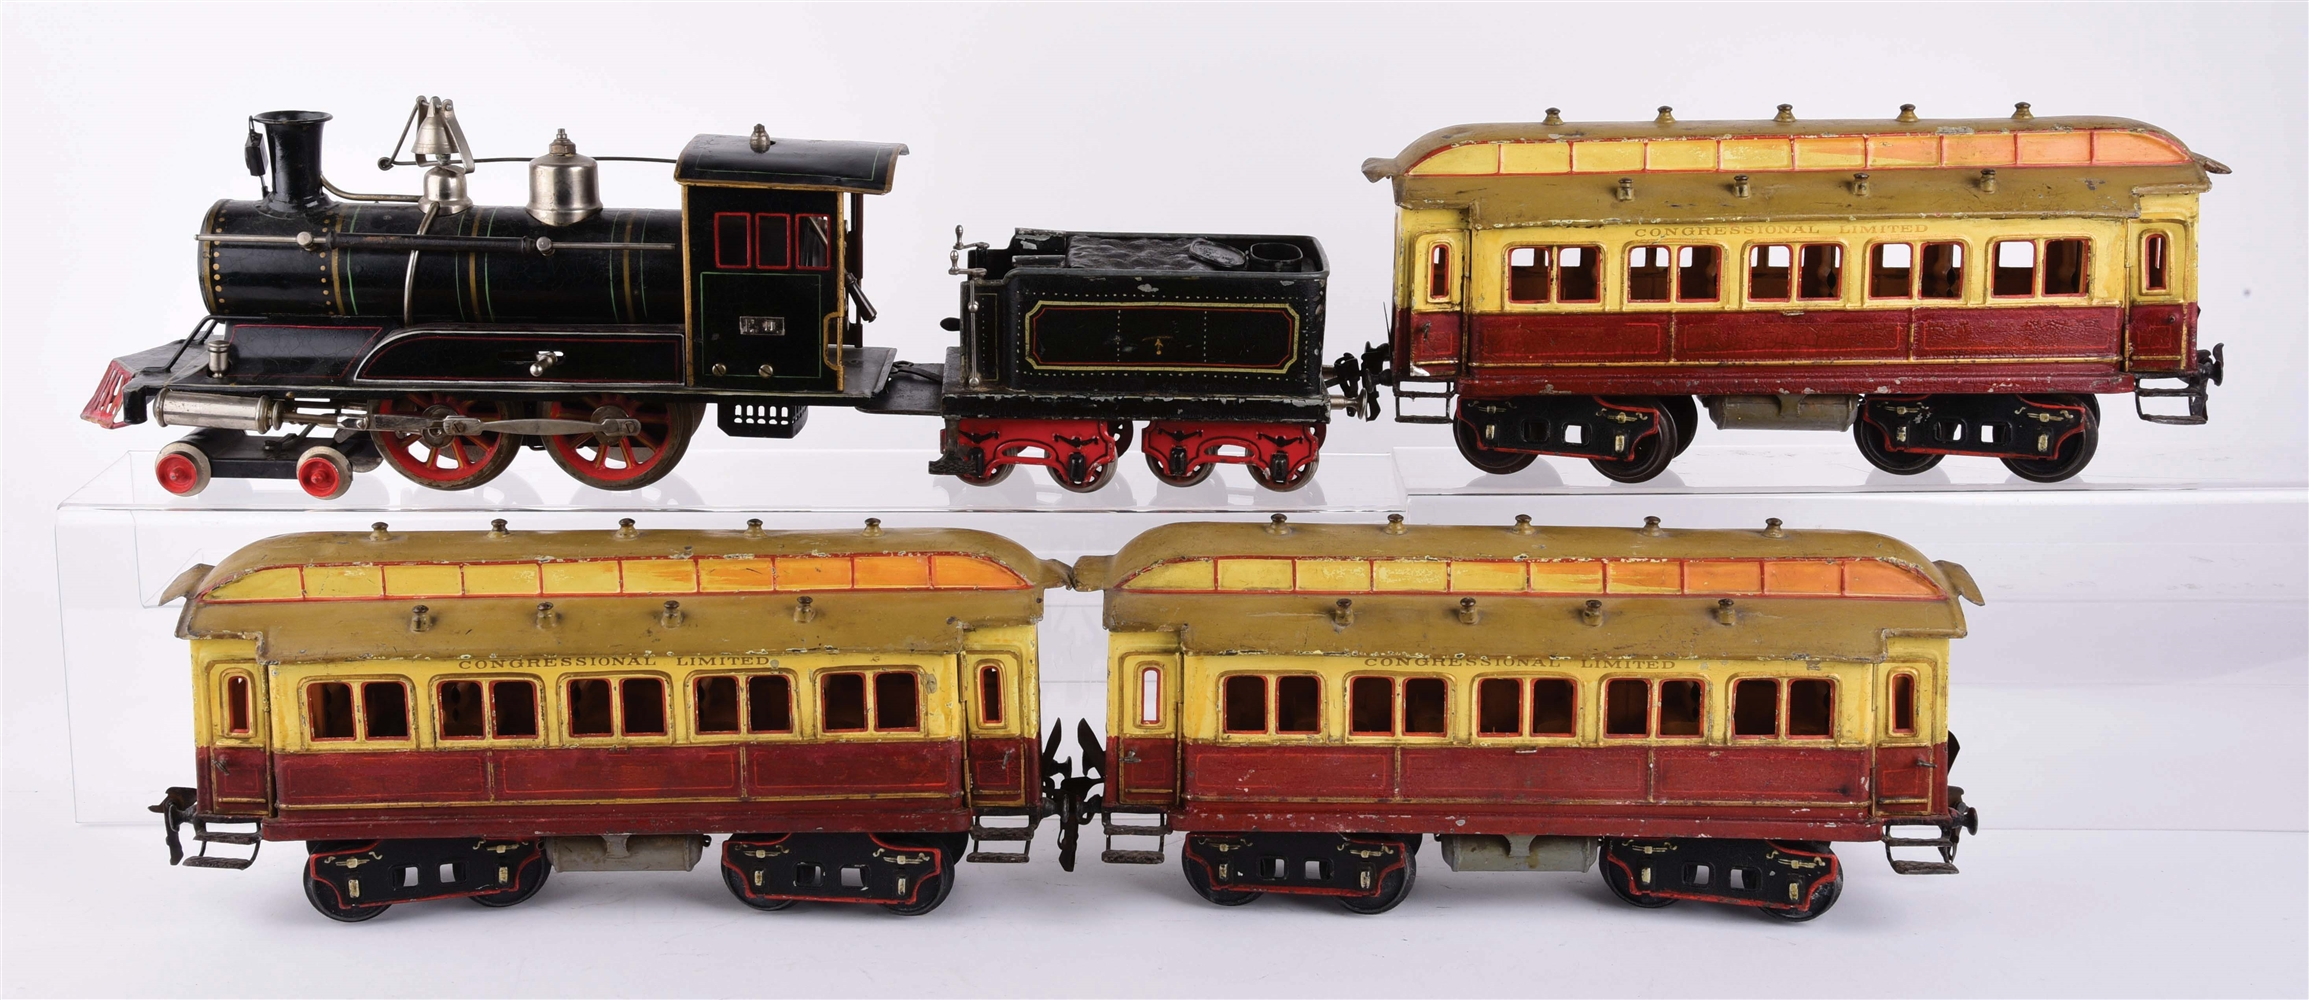 EARLY GERMAN MARKLIN CONGRESSIONAL LIMITED PASSENGER TRAIN SET.